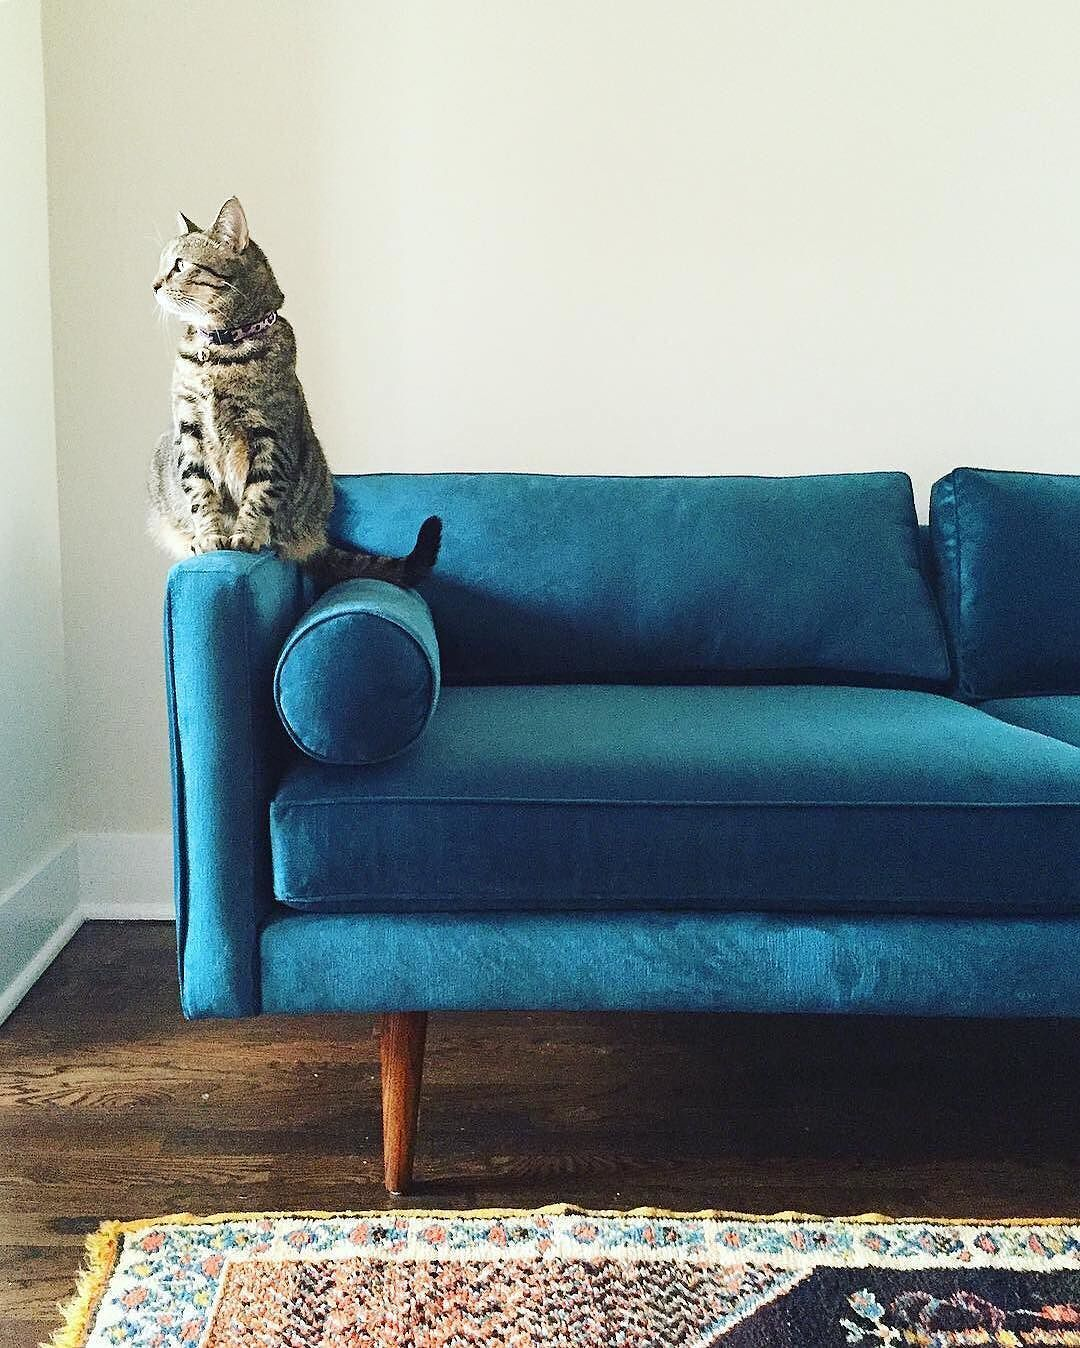 We Love A Pet With Good Taste. 😻💅 #mywestelm Photo By